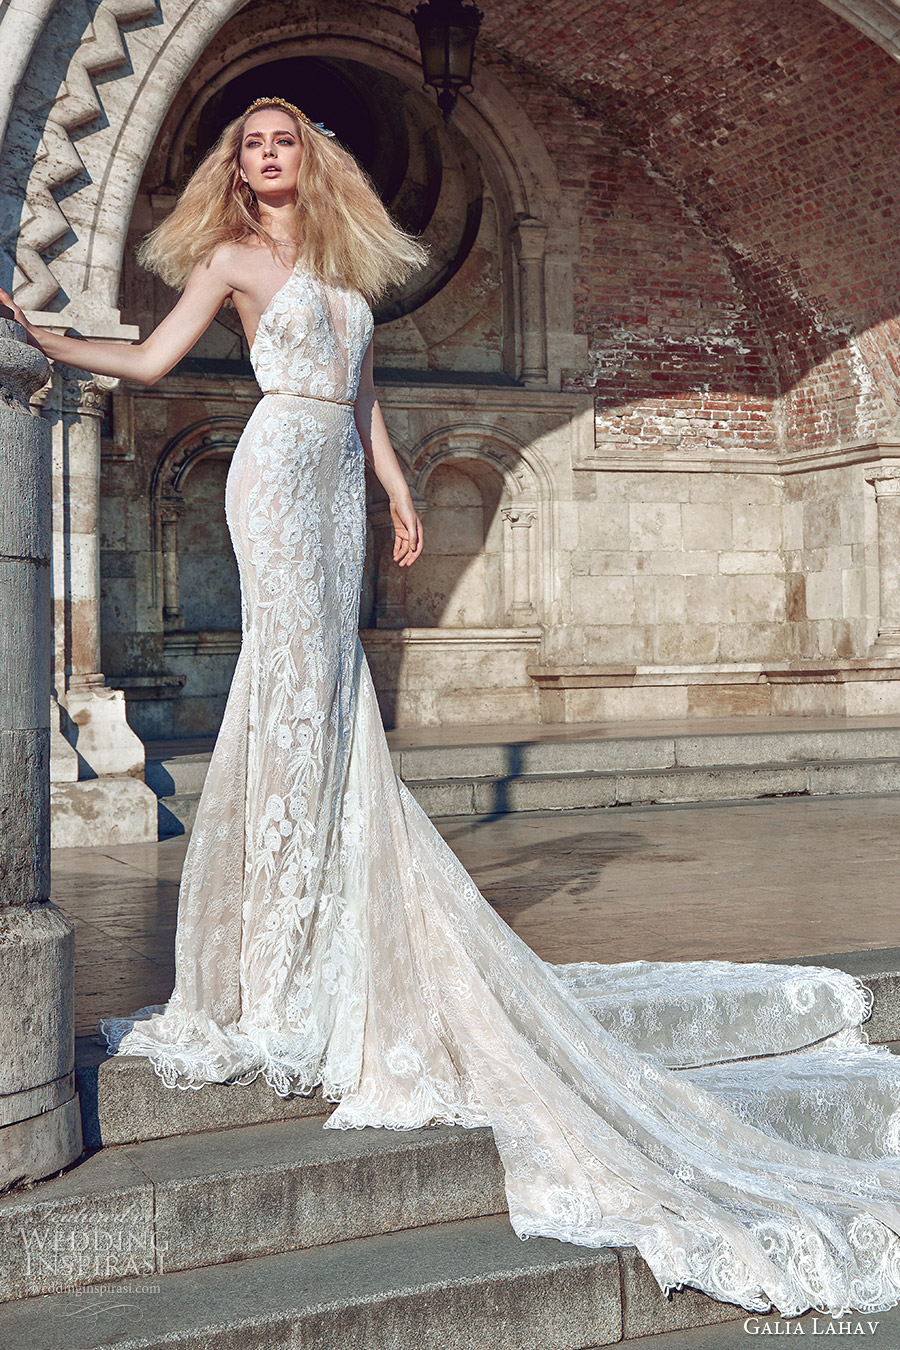 Galia lahav couture fall 2016 wedding dresses ivory Wedding dress designer galia lahav